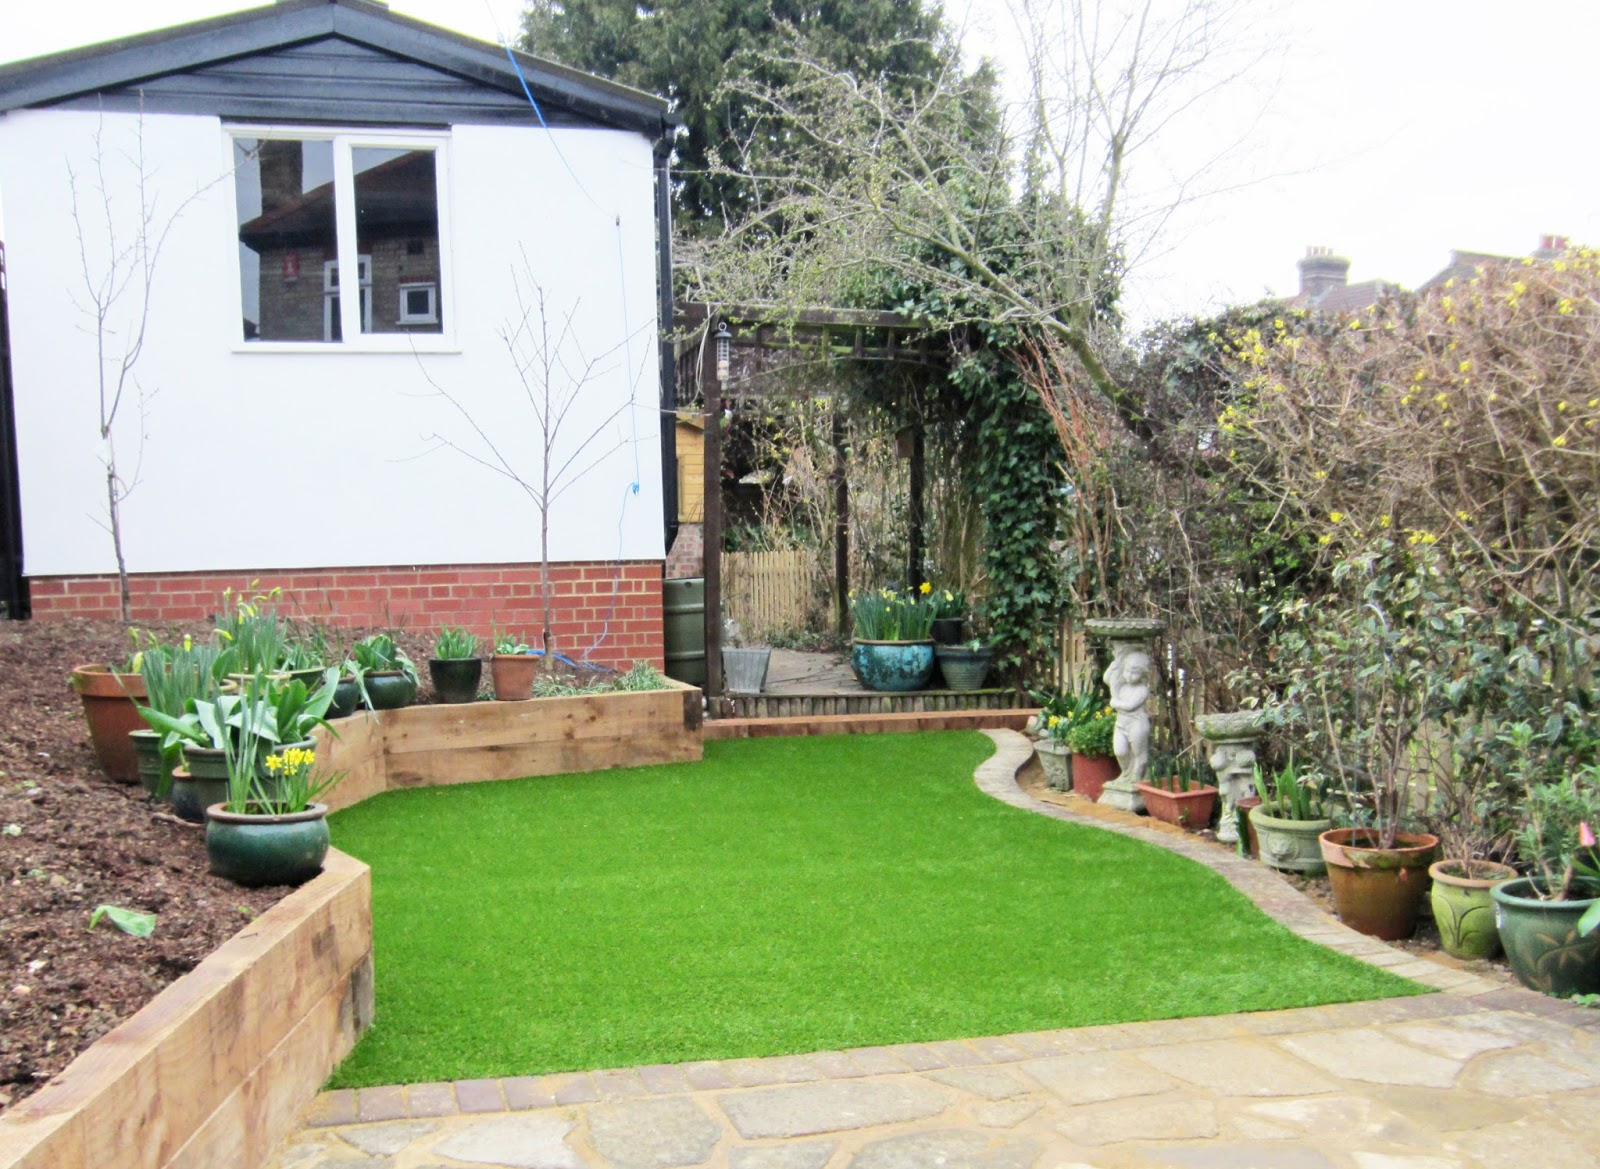 A London back garden after its makeover. Artificial grass has been laid in the north facing plot and wooden sleepers edge the border. Fruit trees have been planted and pots are full of spring bulbs.